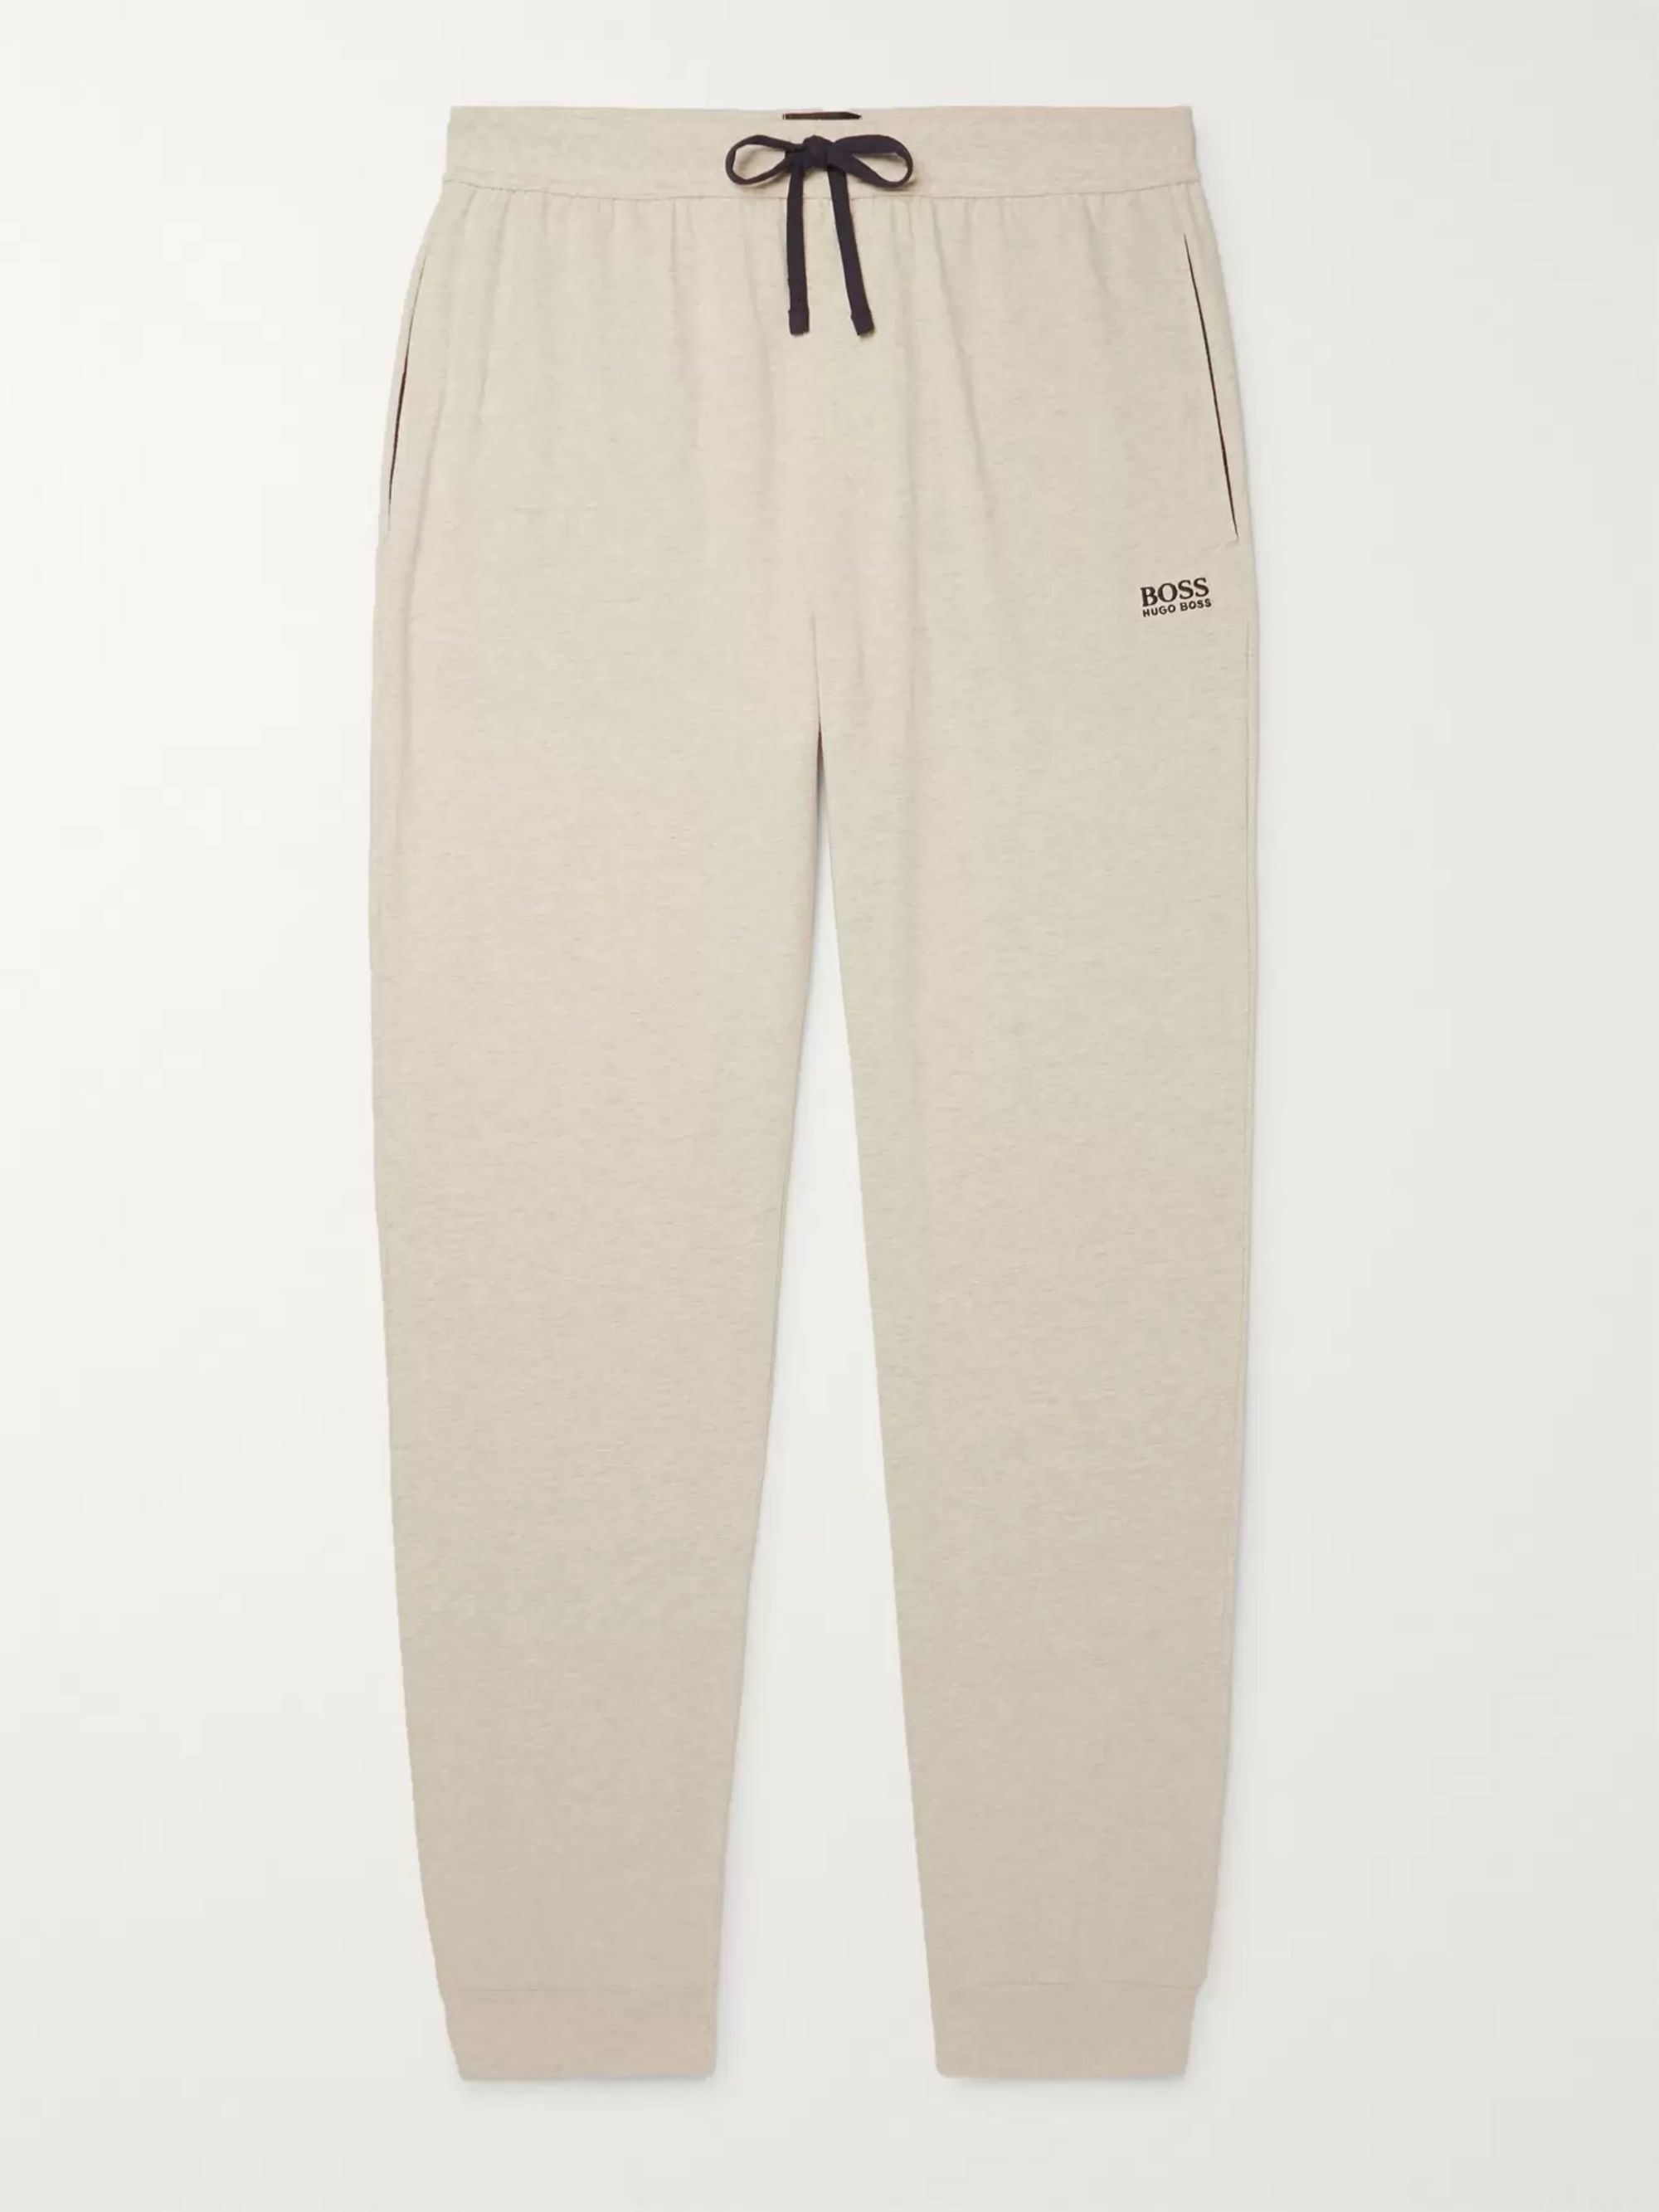 Hugo Boss Slim-Fit Tapered Mélange Stretch-Cotton Jersey Sweatpants